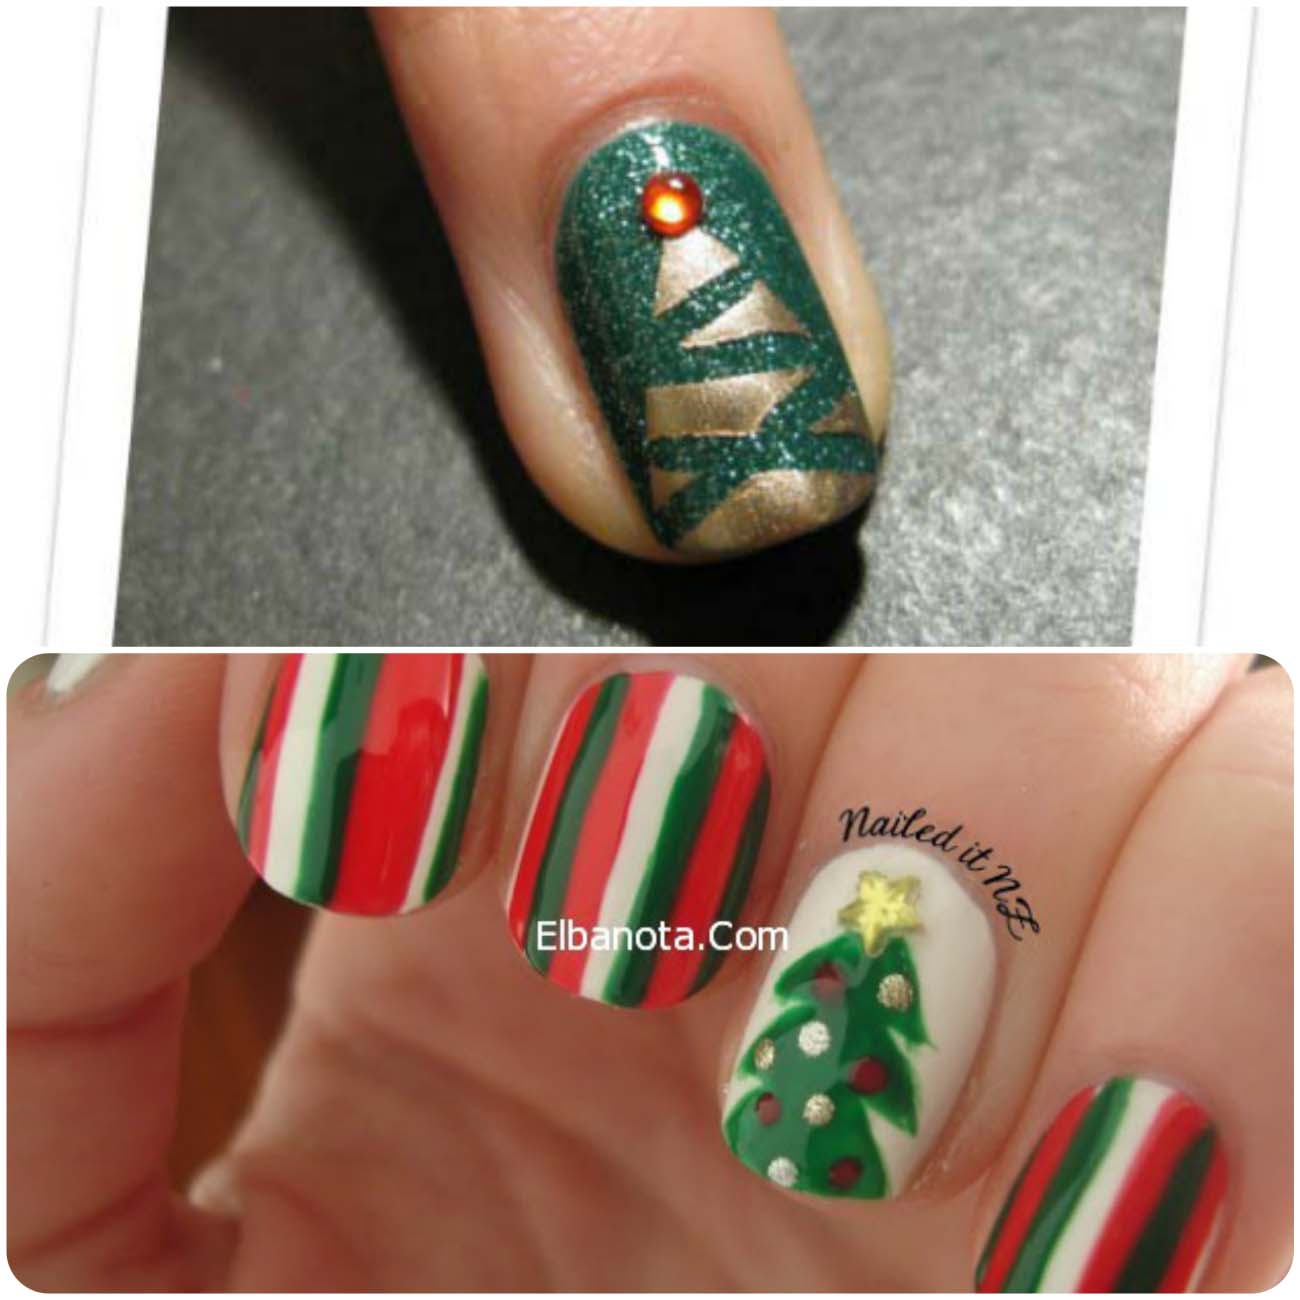 Abstract-Christmas-Tree-Nail-Art-2015-8_Fotor_Collage